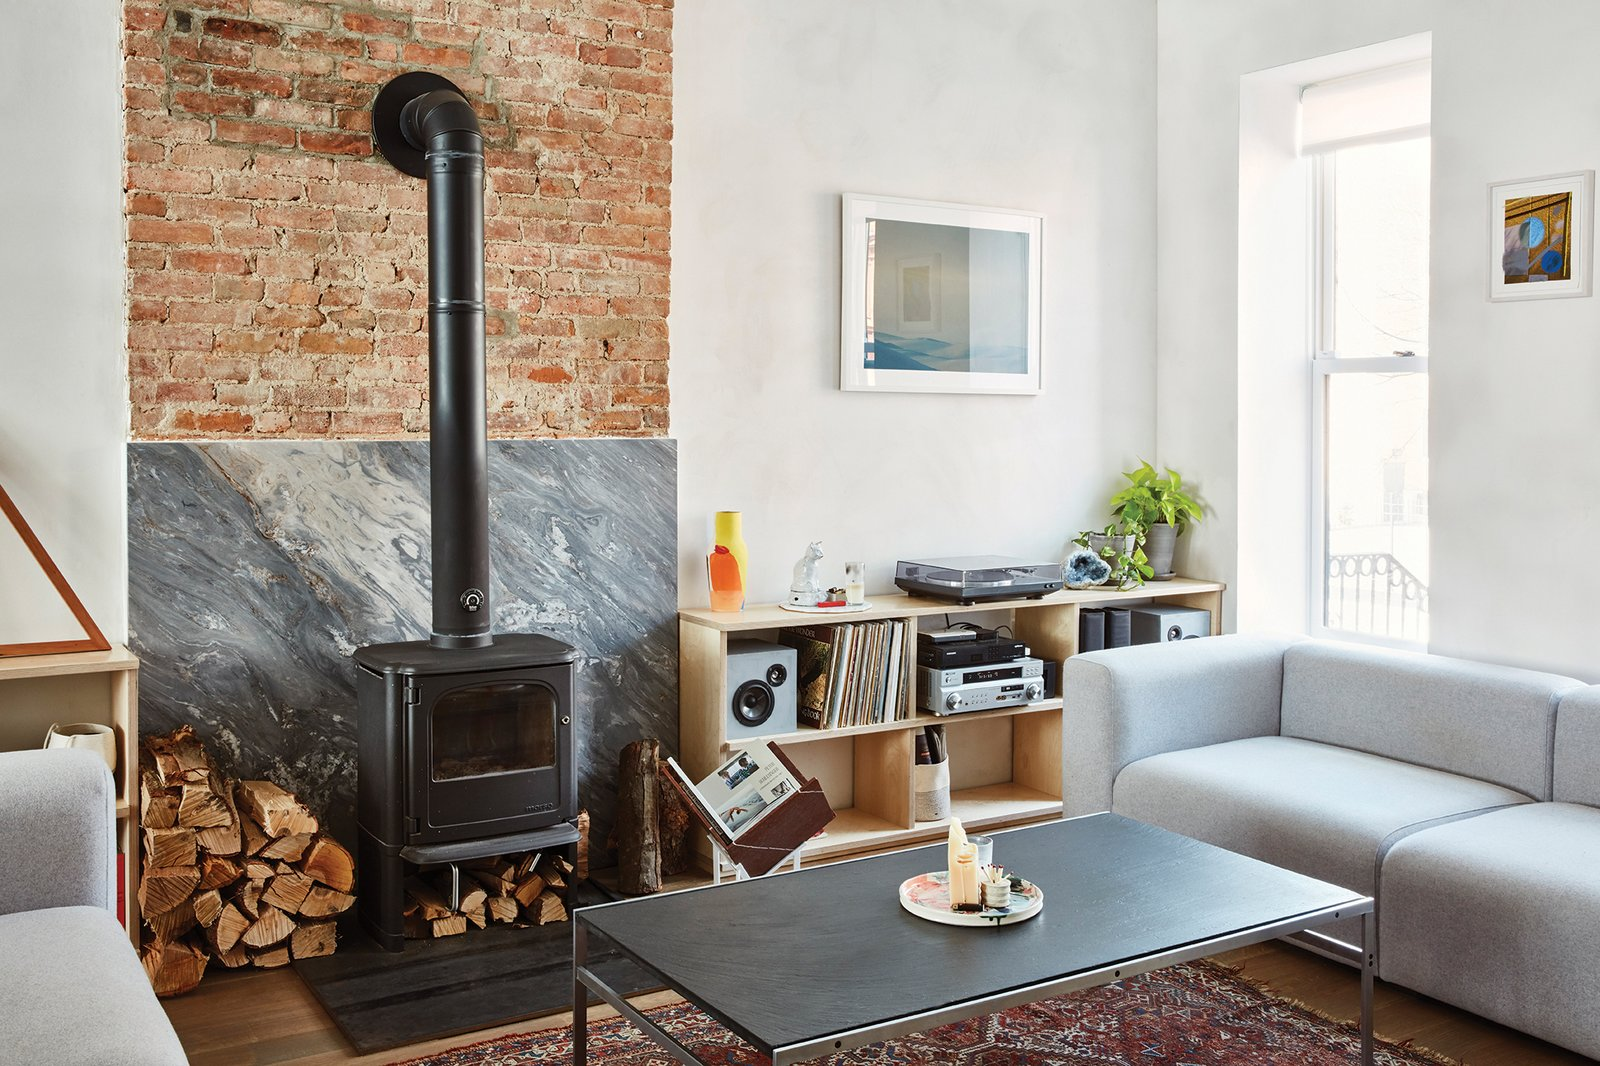 The first floor holds the living room, which includes a Morsø 3440 wood-burning stove and a pair of Mags sofas by HAY.